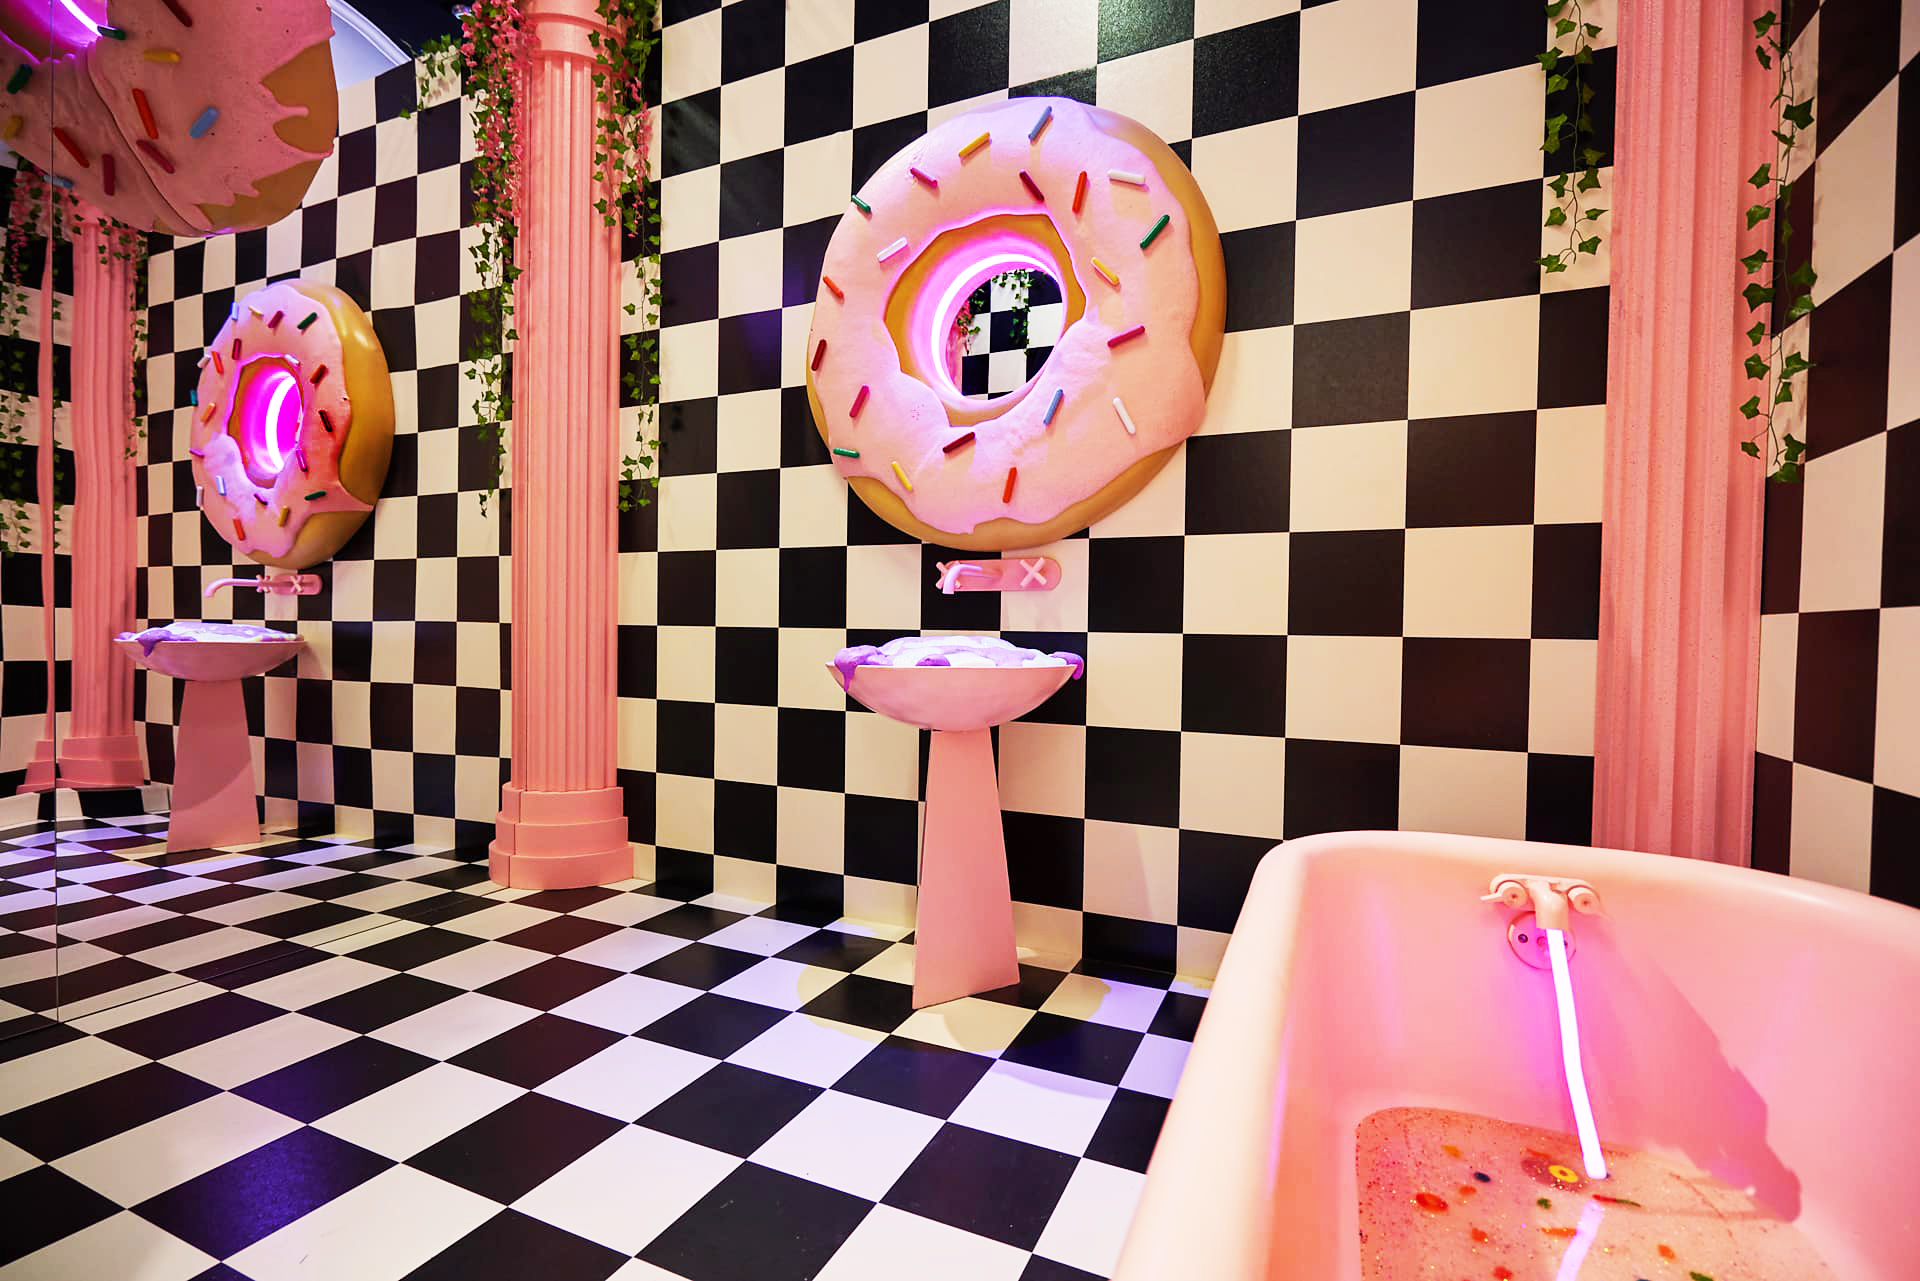 POP-UP IMMERSIVE ART INSTALLATION SWEET  PHOTO - JONATHAN ZIZZO  TOOTH HOTEL - DALLAS, TX - 2018